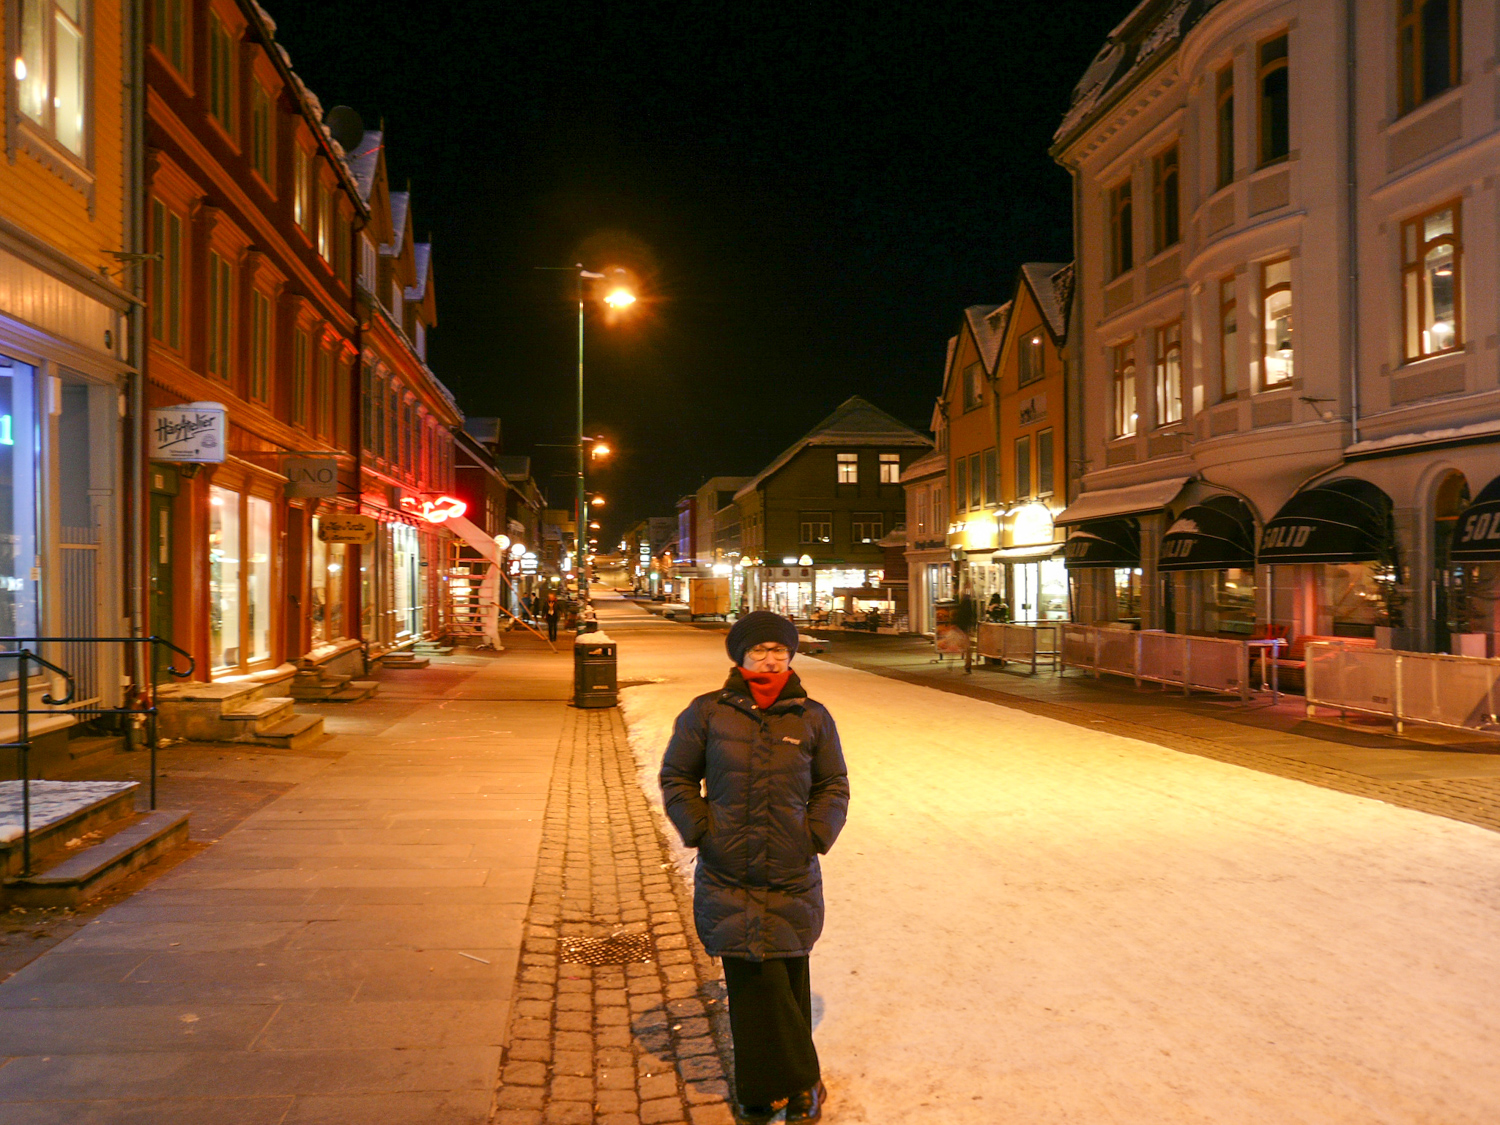 Heated sidewalks in the city centre